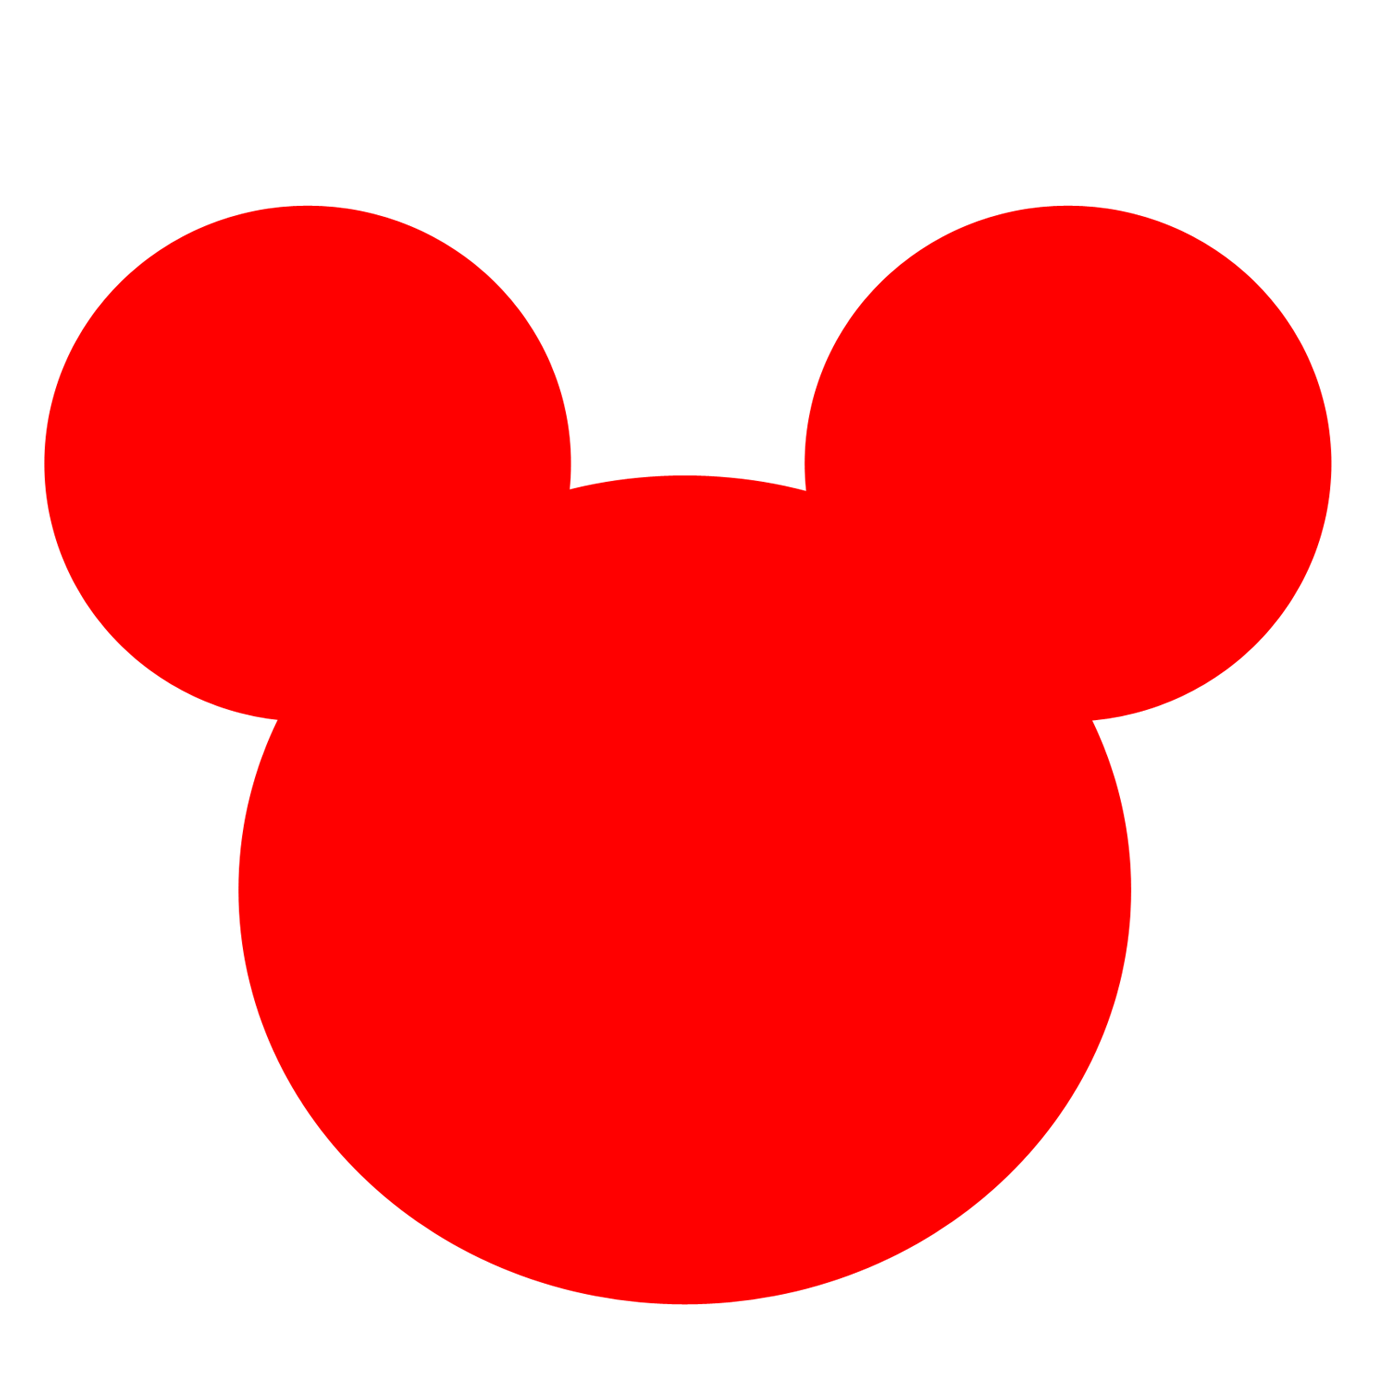 How the ears became. Ear clipart silhouette